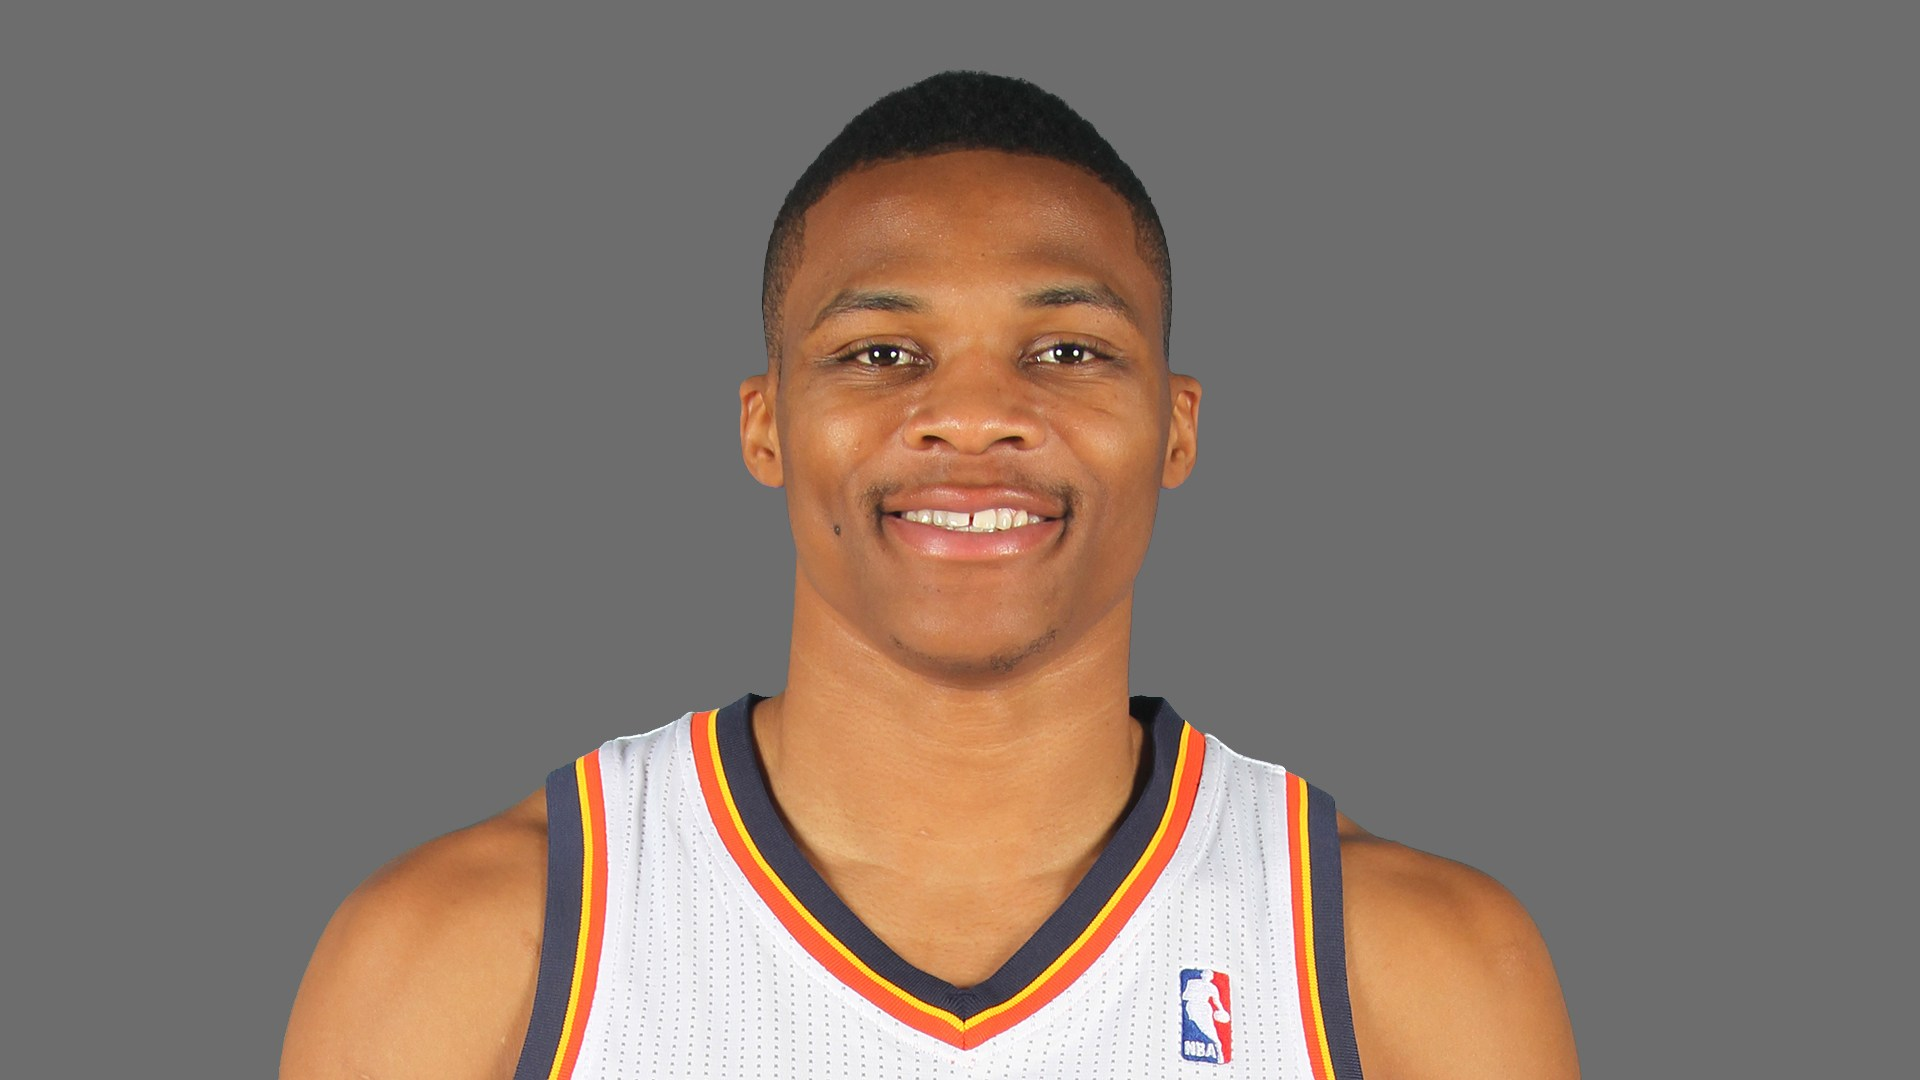 russell westbrook athlete smile wallpaper 63583